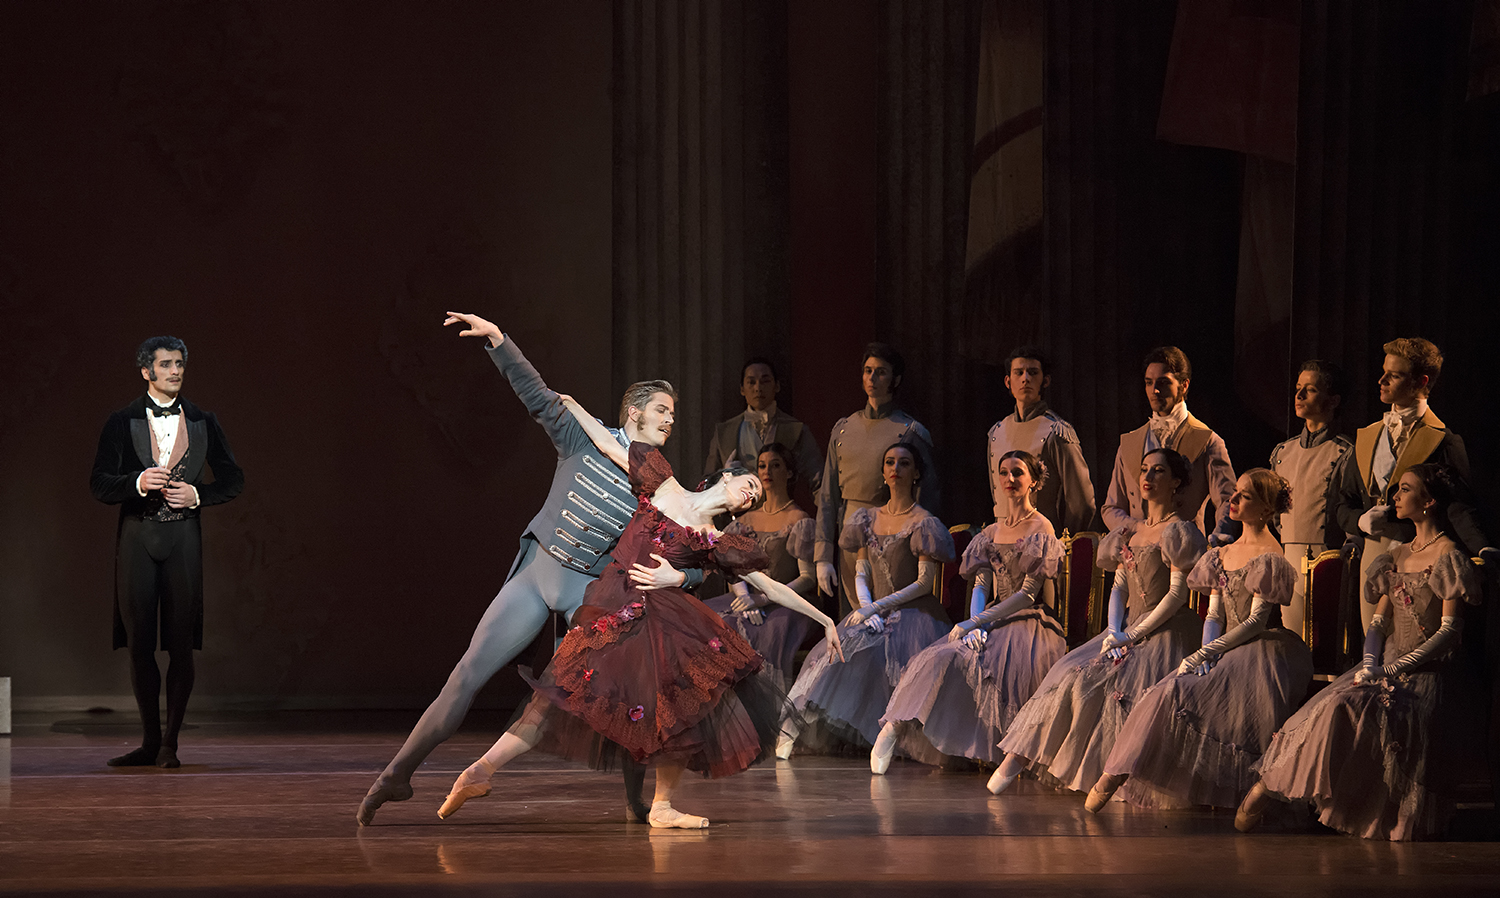 Boston Ballet_LashaKhozashvili_BoBusby_PetraConti_JohnCranko'sOnegin(c)GeneSchiavone